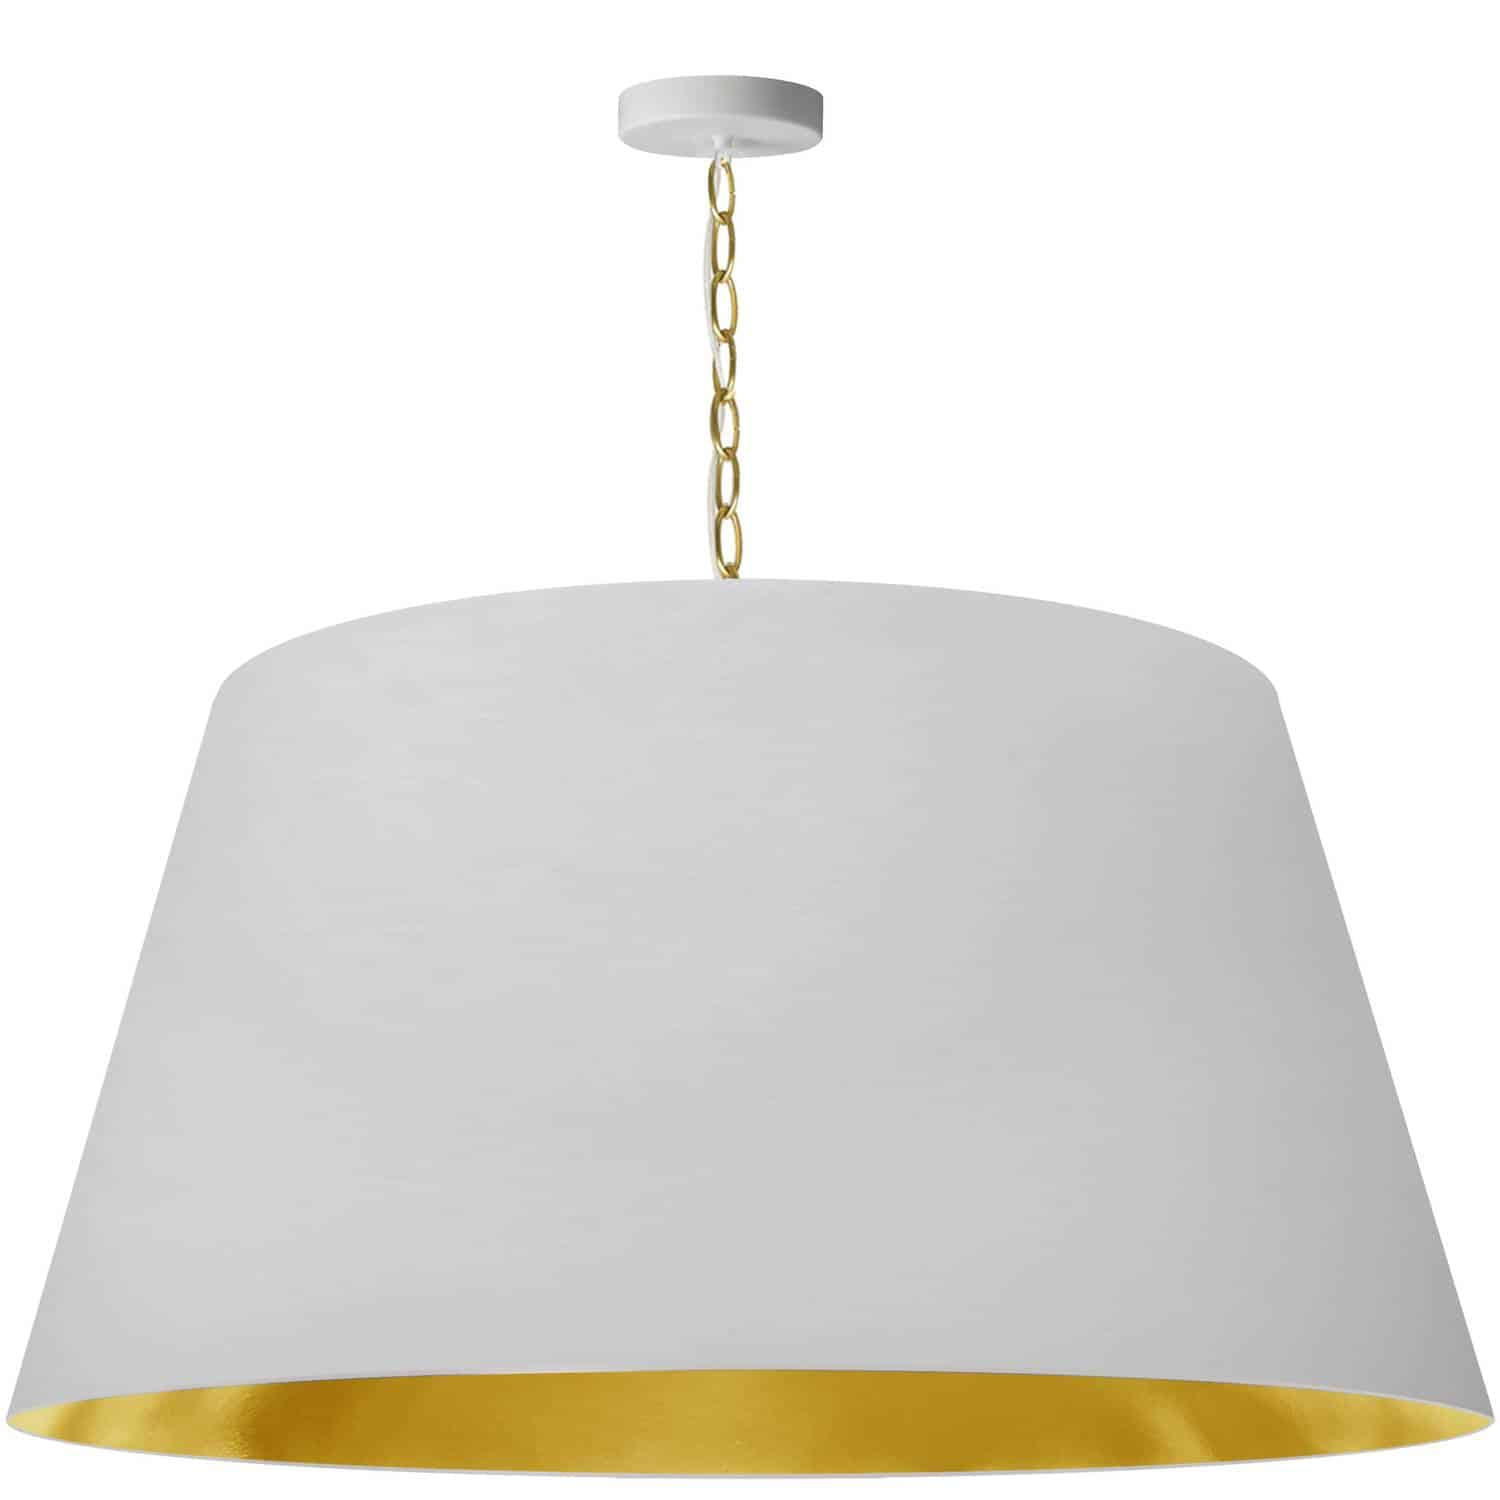 1 Light Brynn Extra Large Pendant, White/Gold Shade, Aged Brass